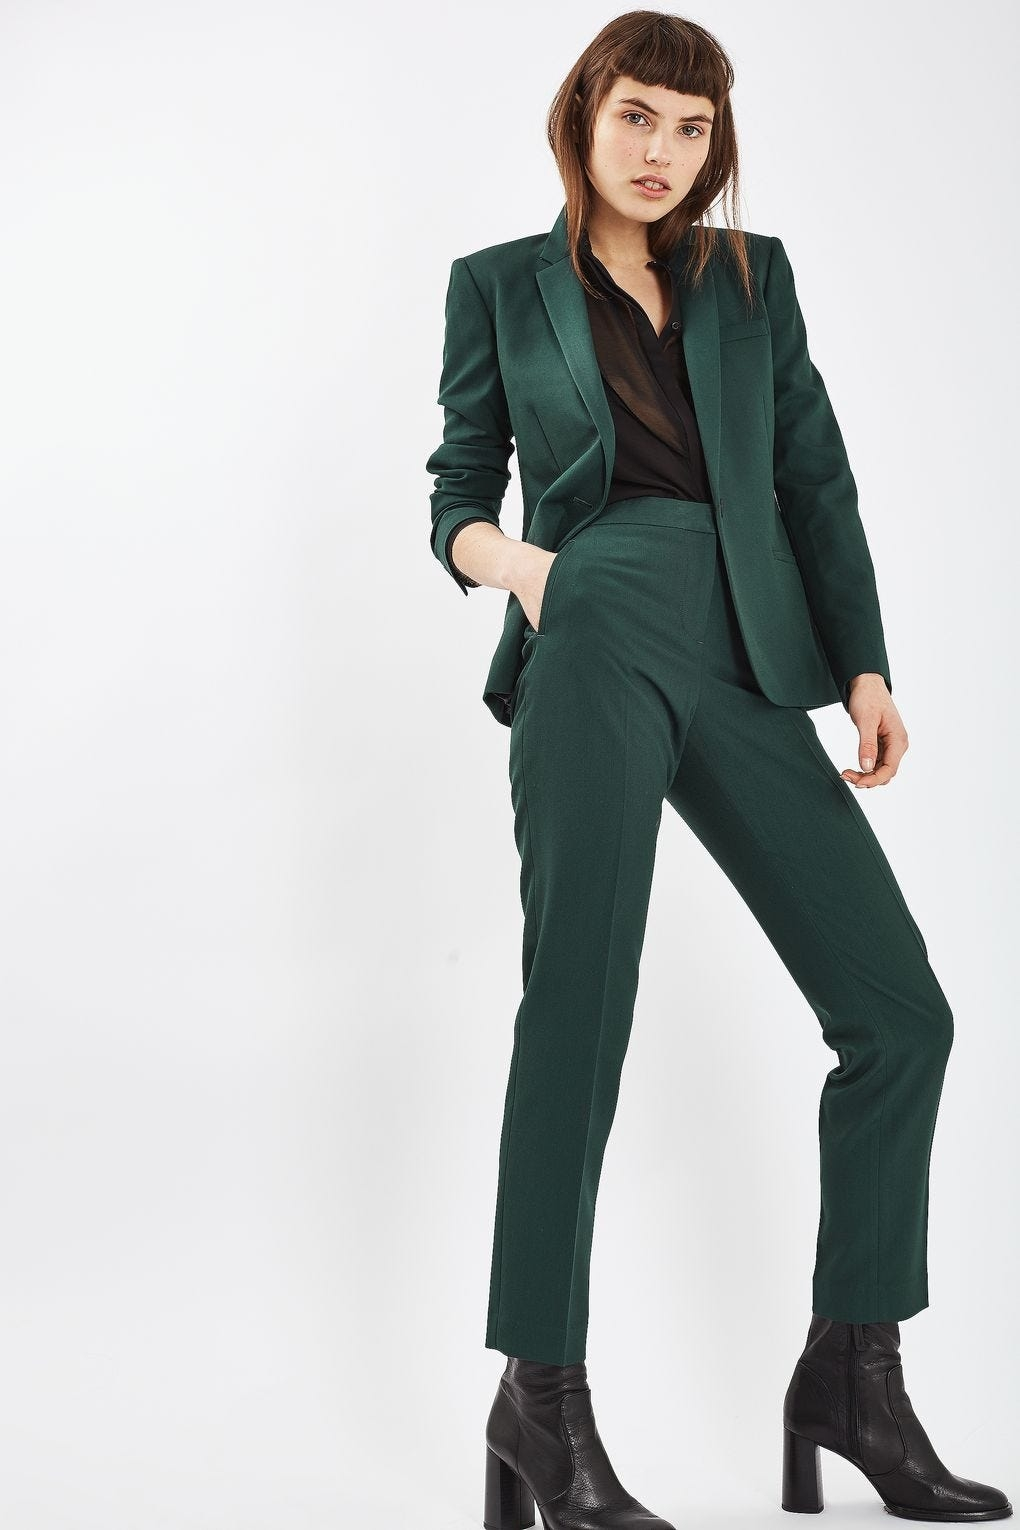 best womens suits price point budget investment